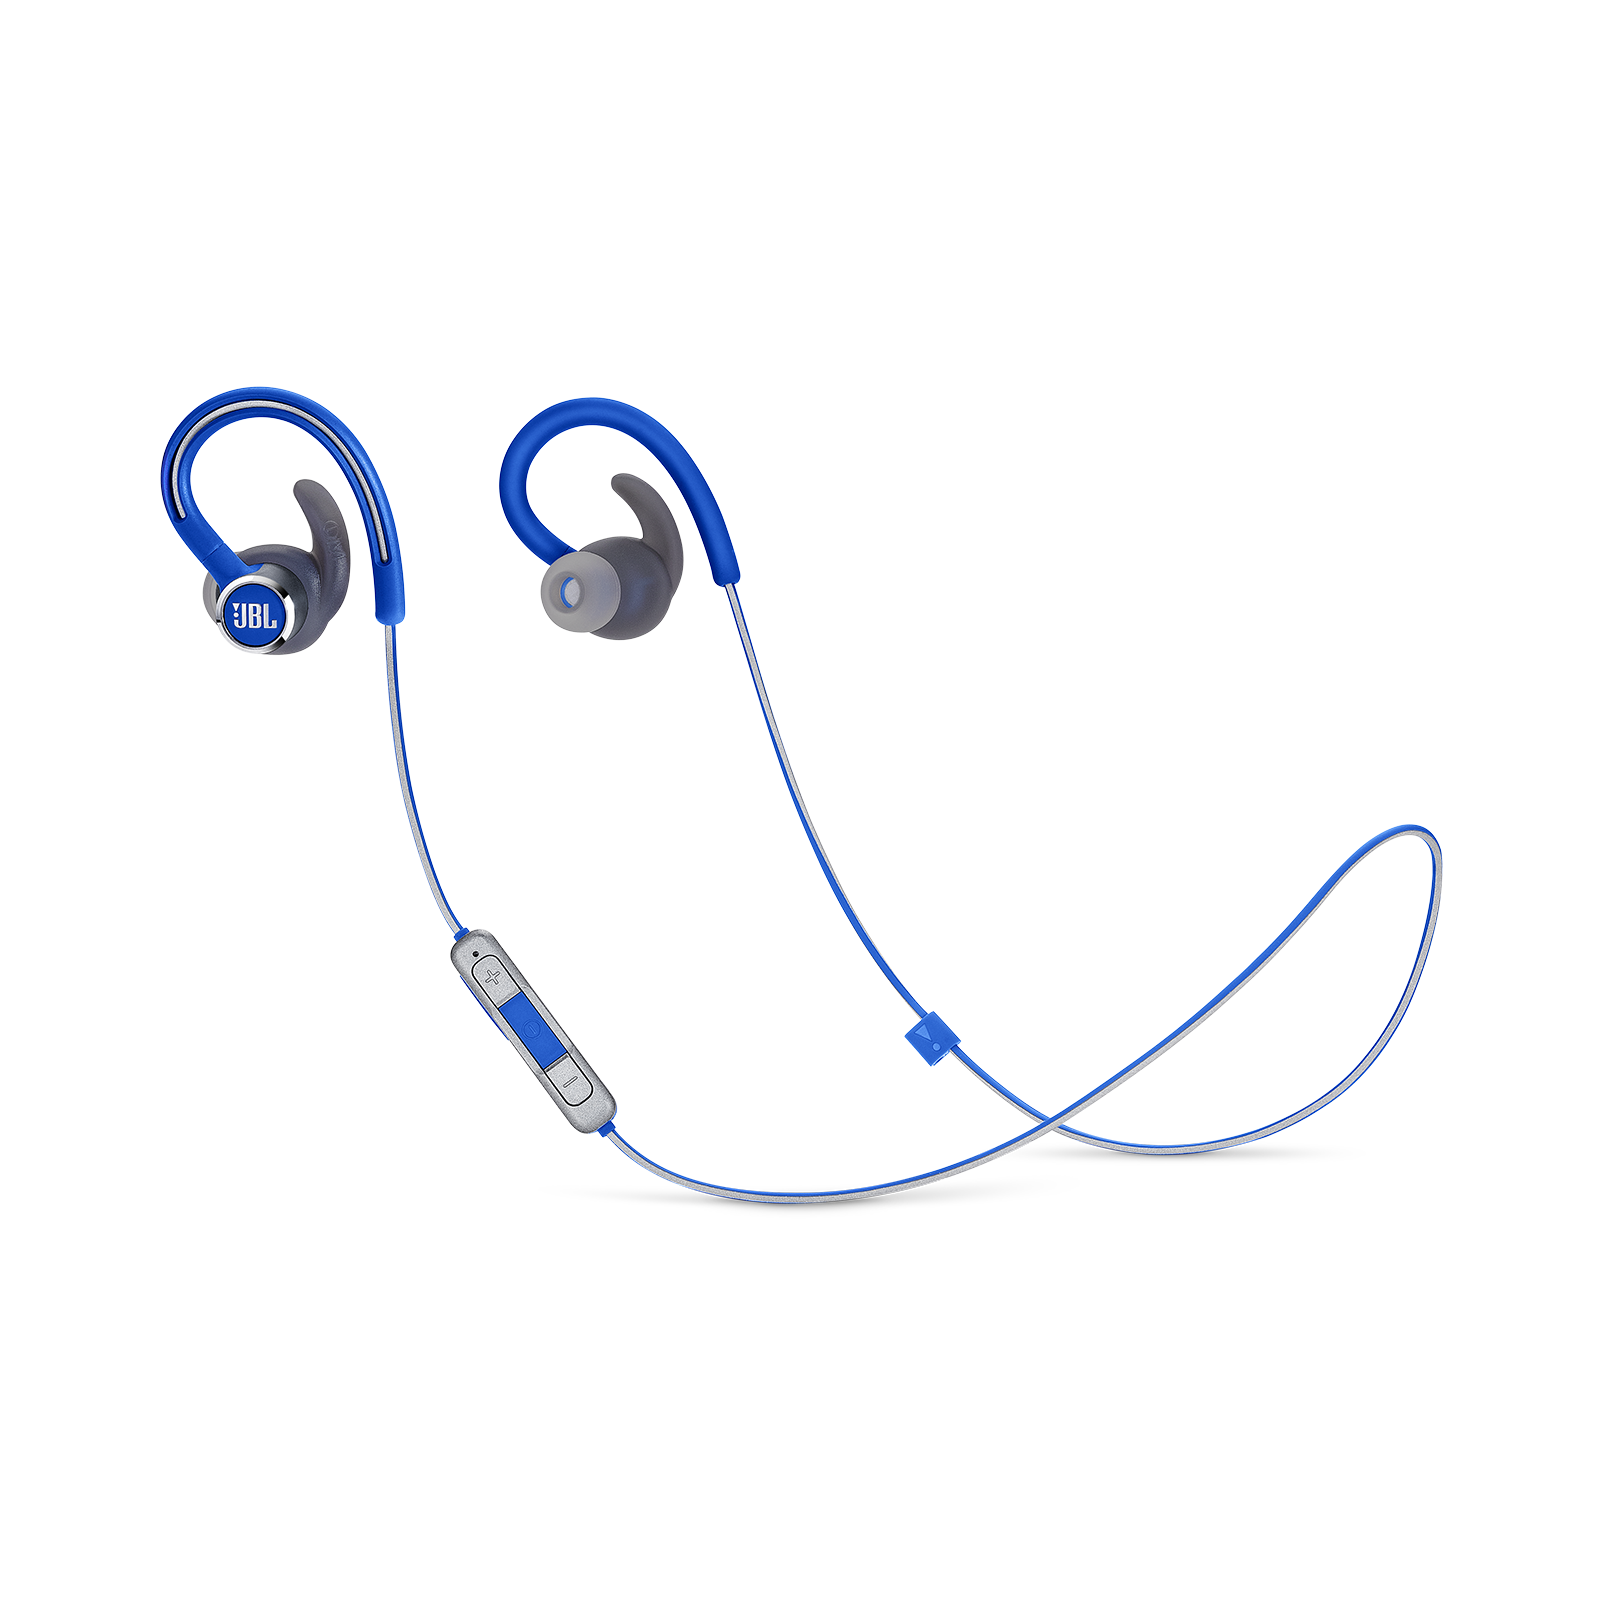 JBL Reflect Contour 2 - Blue - Secure fit Wireless Sport Headphones - Hero